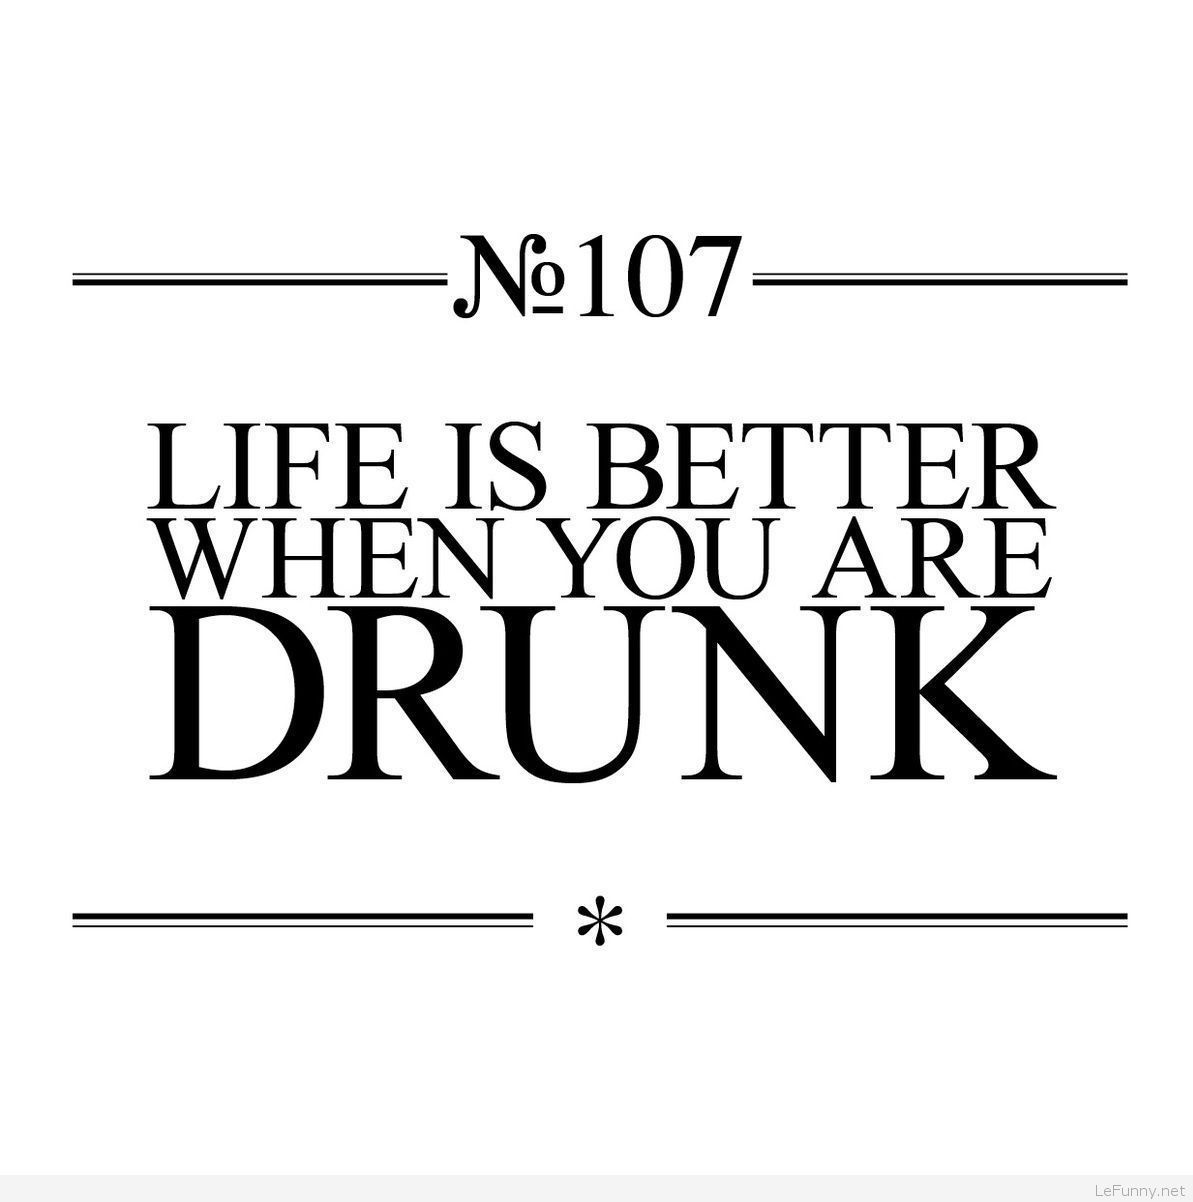 Funny Life Quotes For Facebook Status Quotes Funny Drinking Quotes Funny Quotes Party Quotes Funny